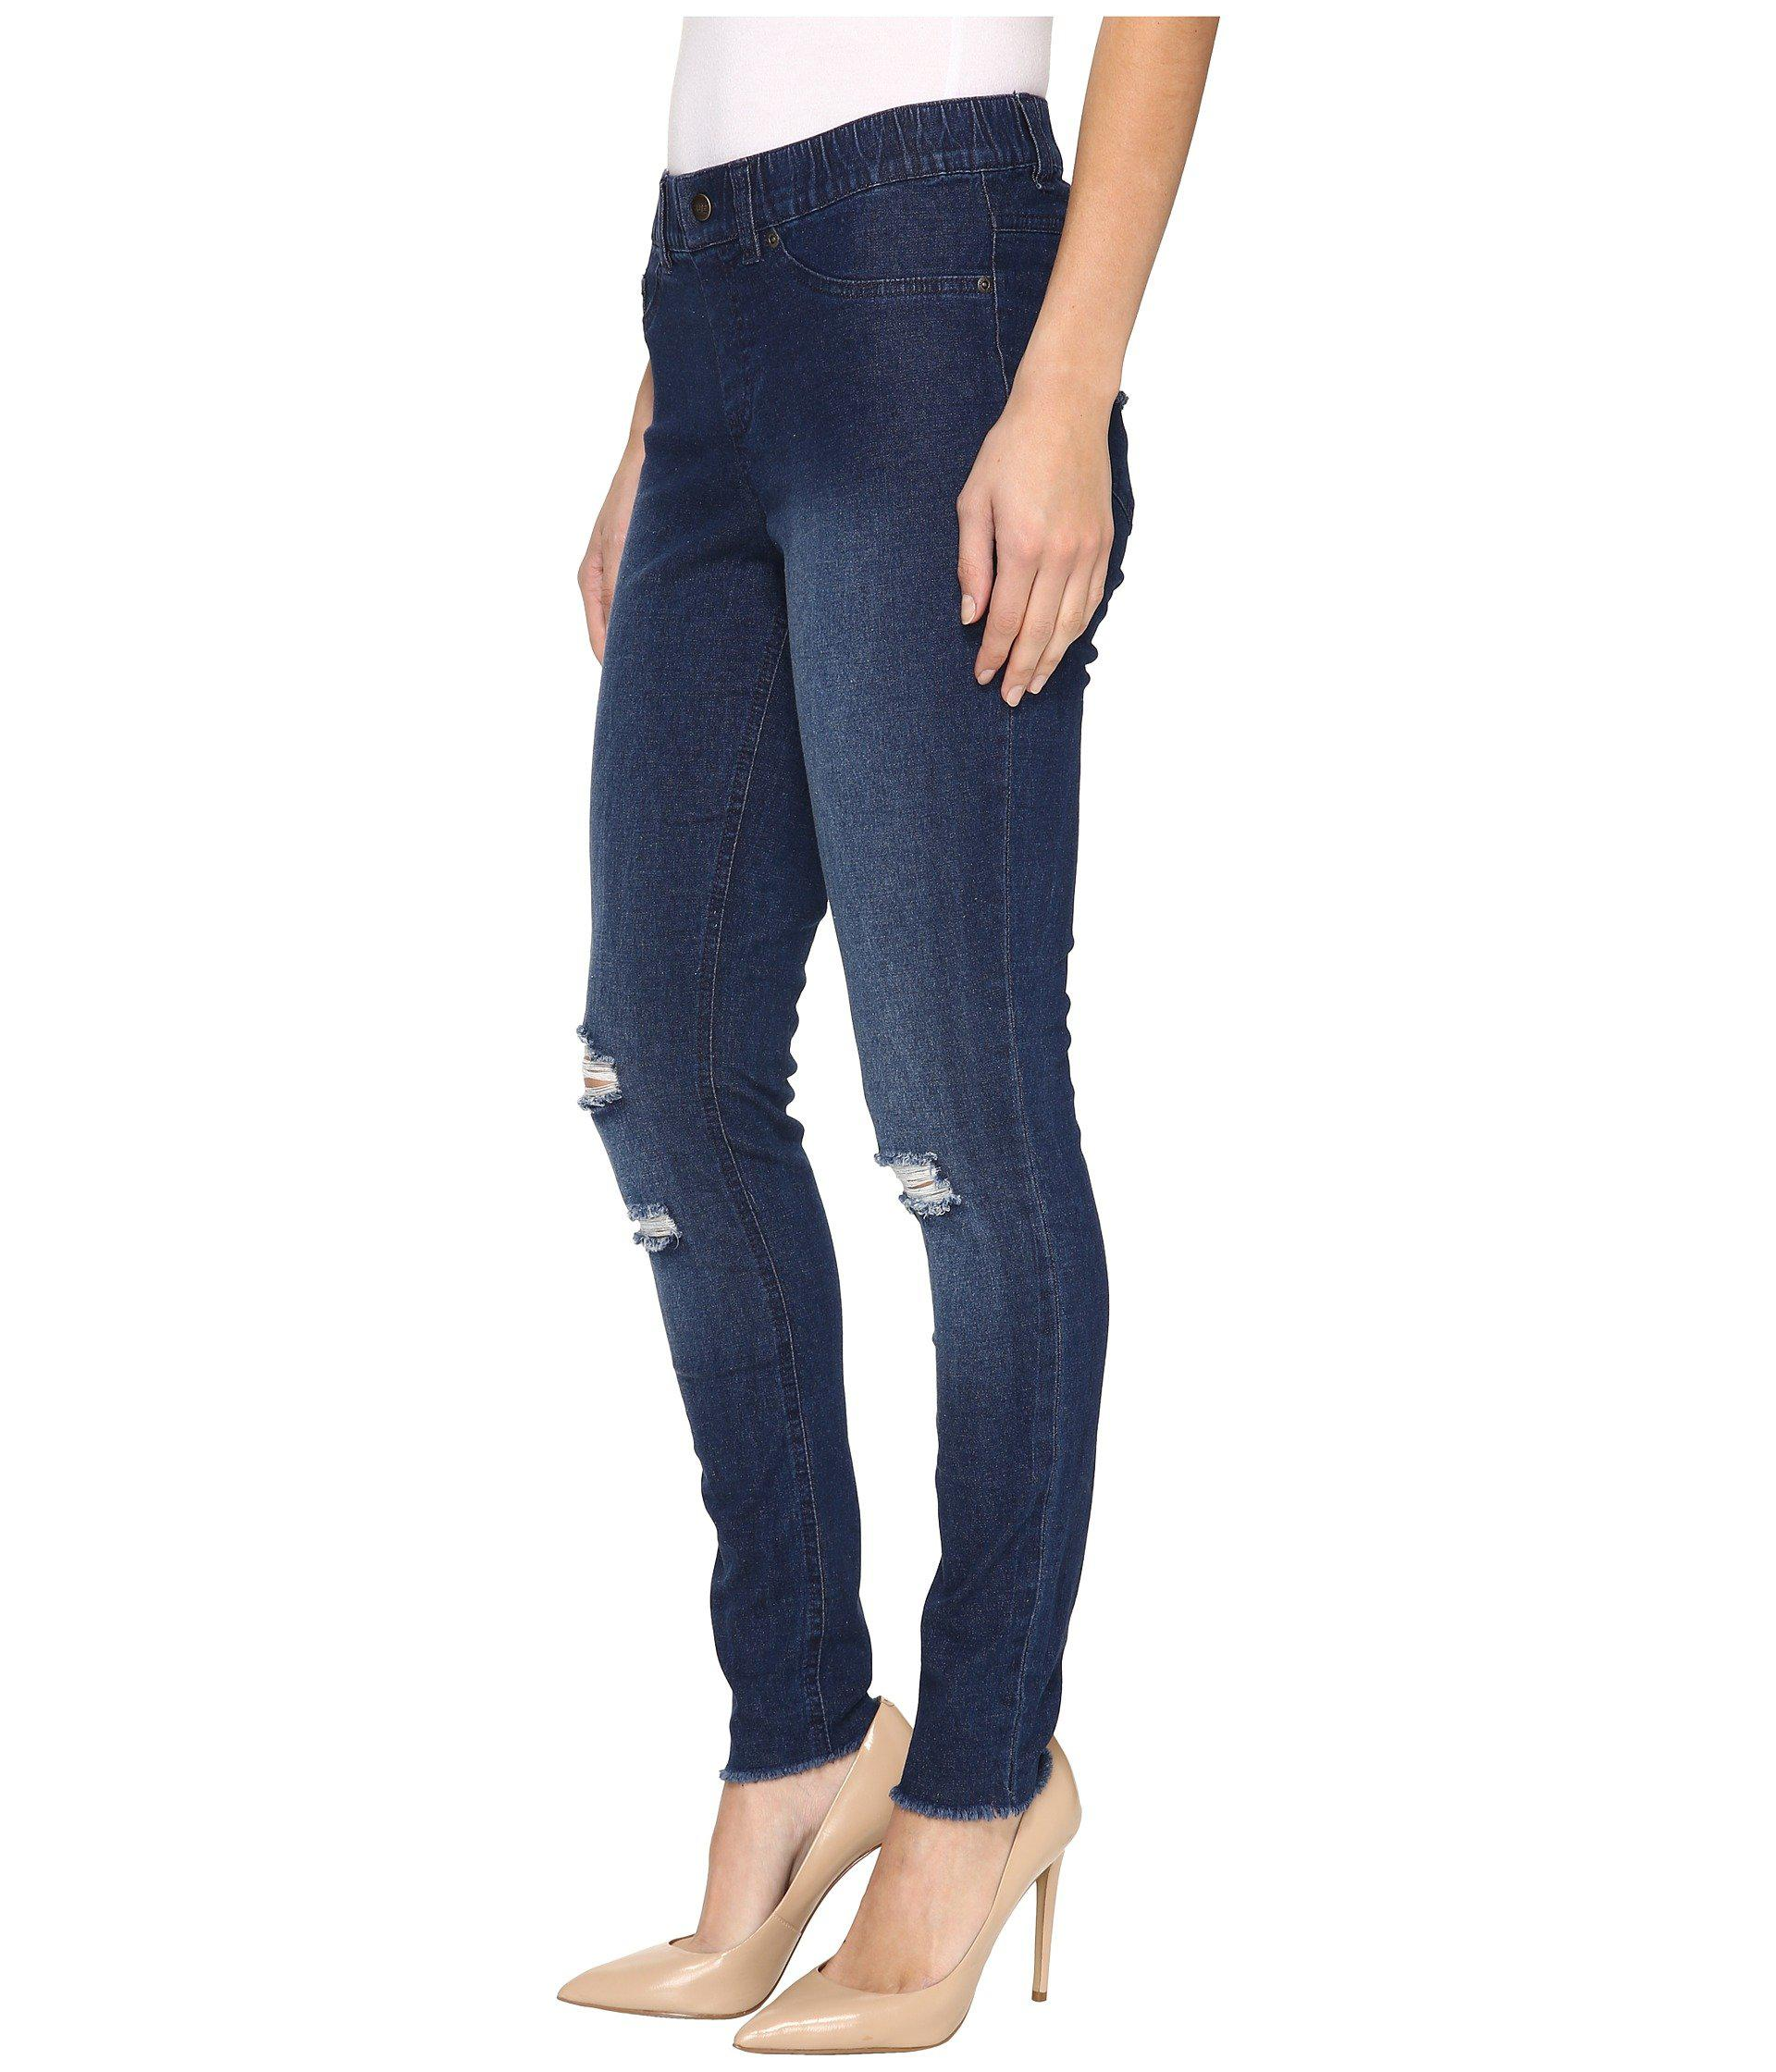 a6b41a531b9c3e Lyst - Hue Ripped Curvy Fit Denim Leggings in Blue - Save 27%